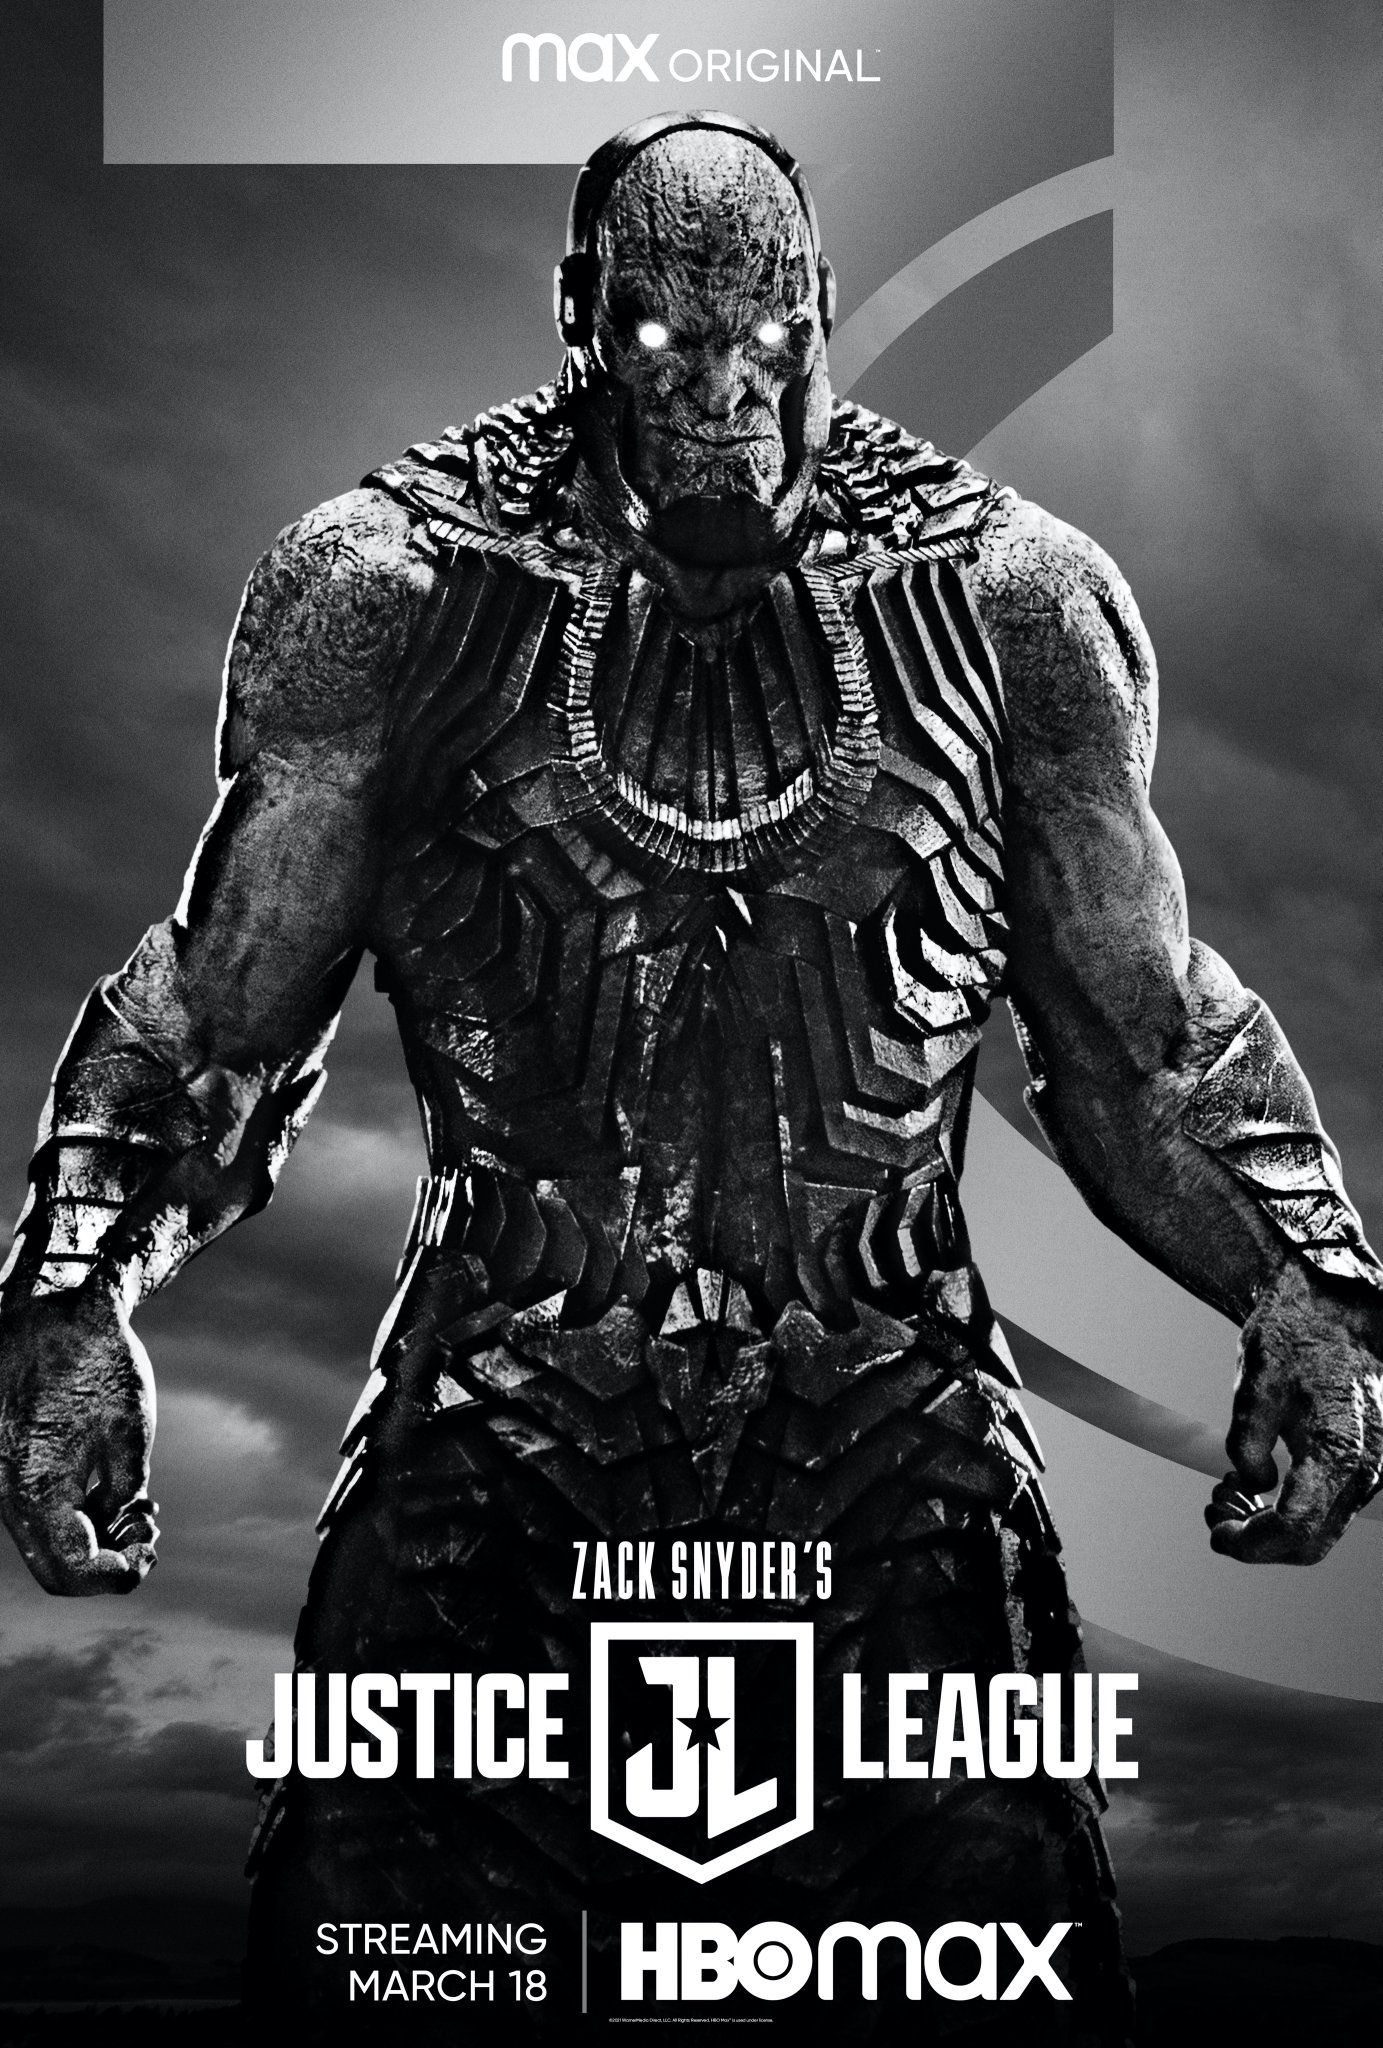 Zack Snyder On Twitter In 2021 Justice League Justice League Characters Darkseid